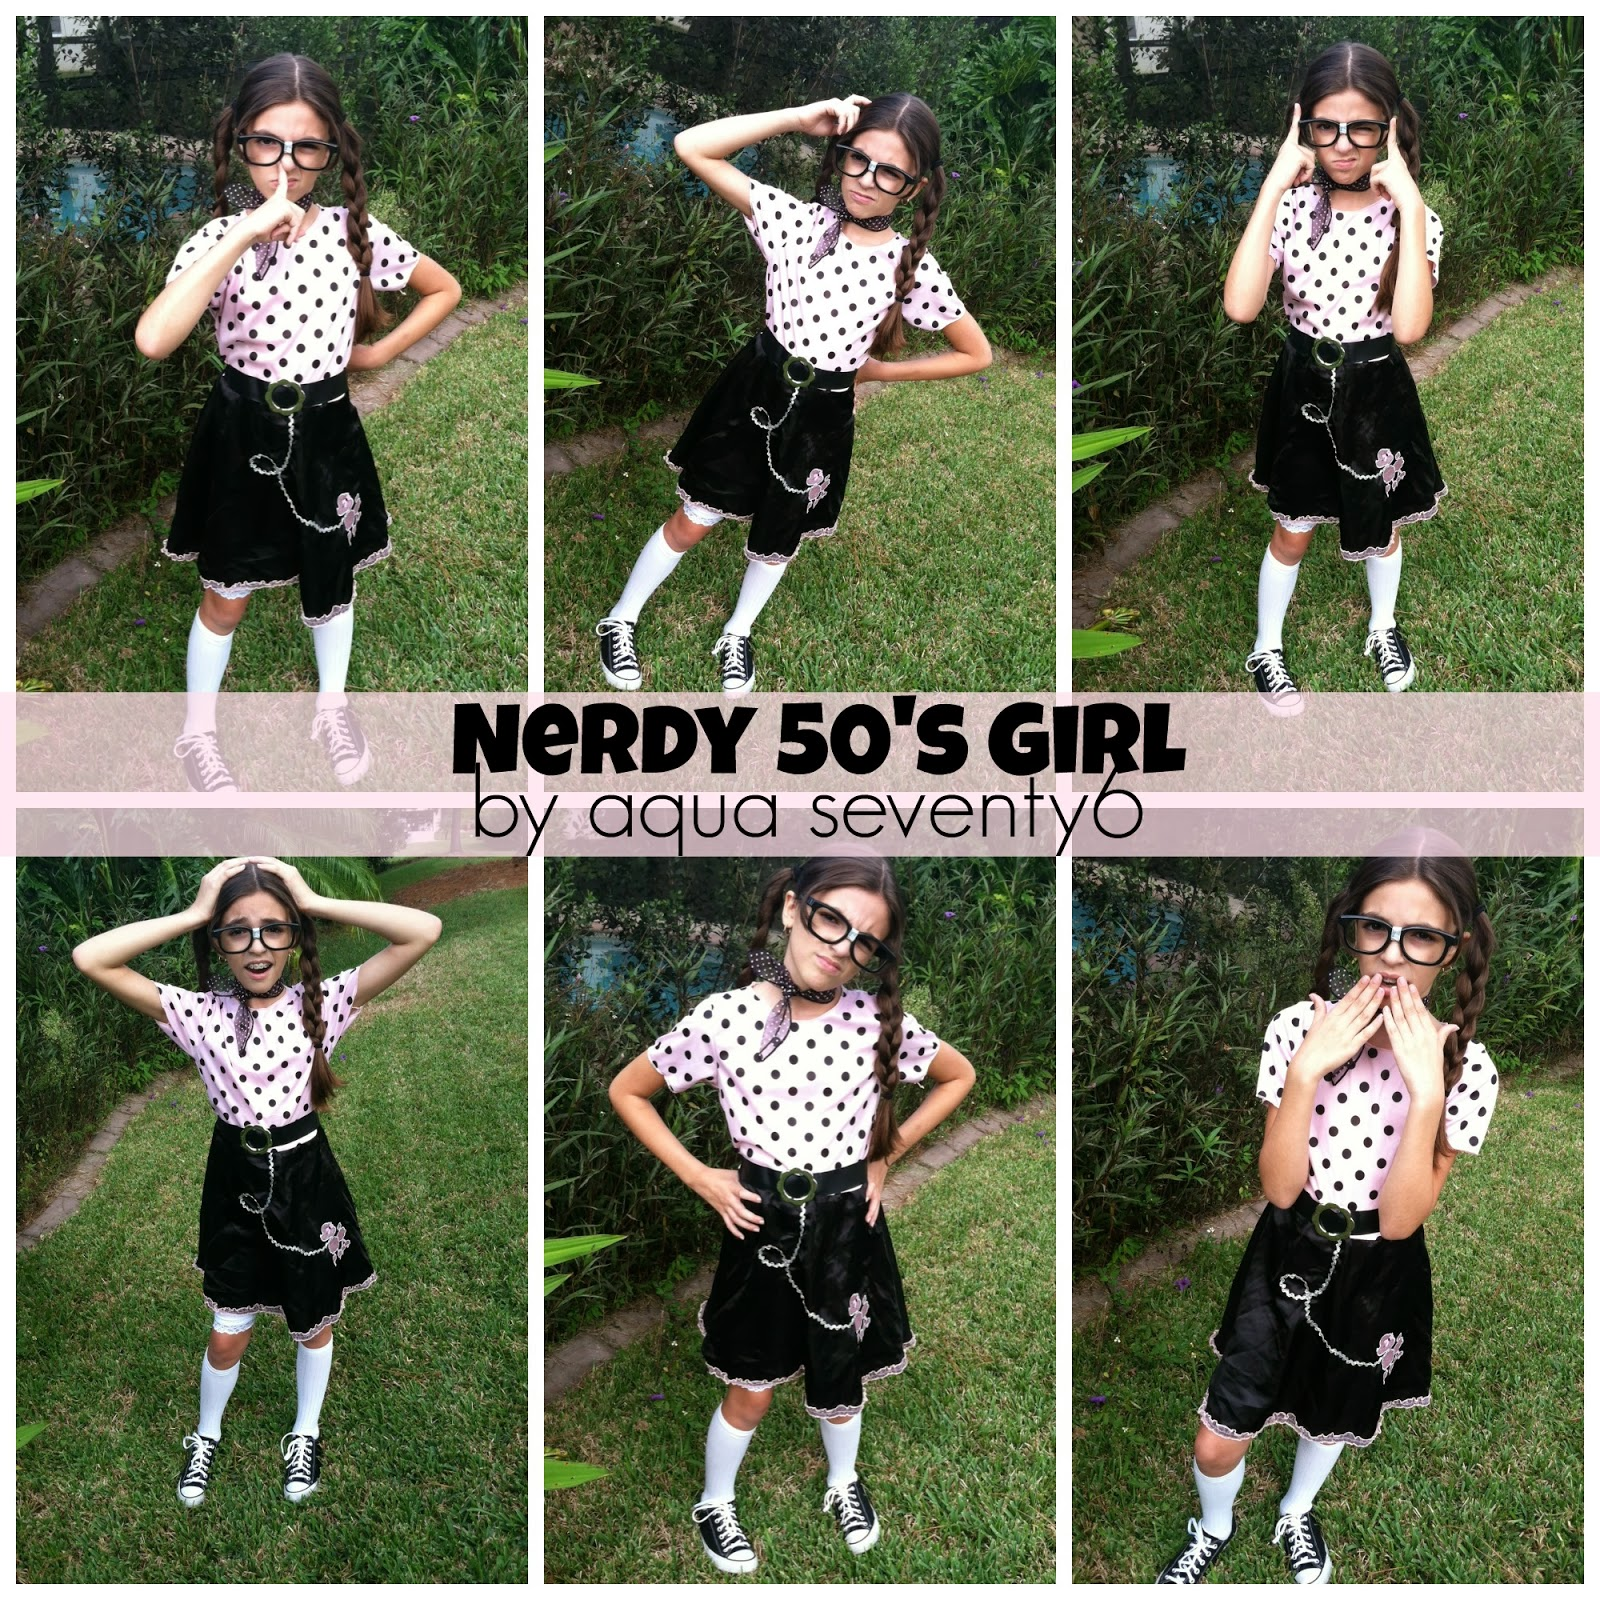 sc 1 st  AquaSeventy6 & Nerdy 50s Girl Putting a Twist on a Store Bought Halloween Costume